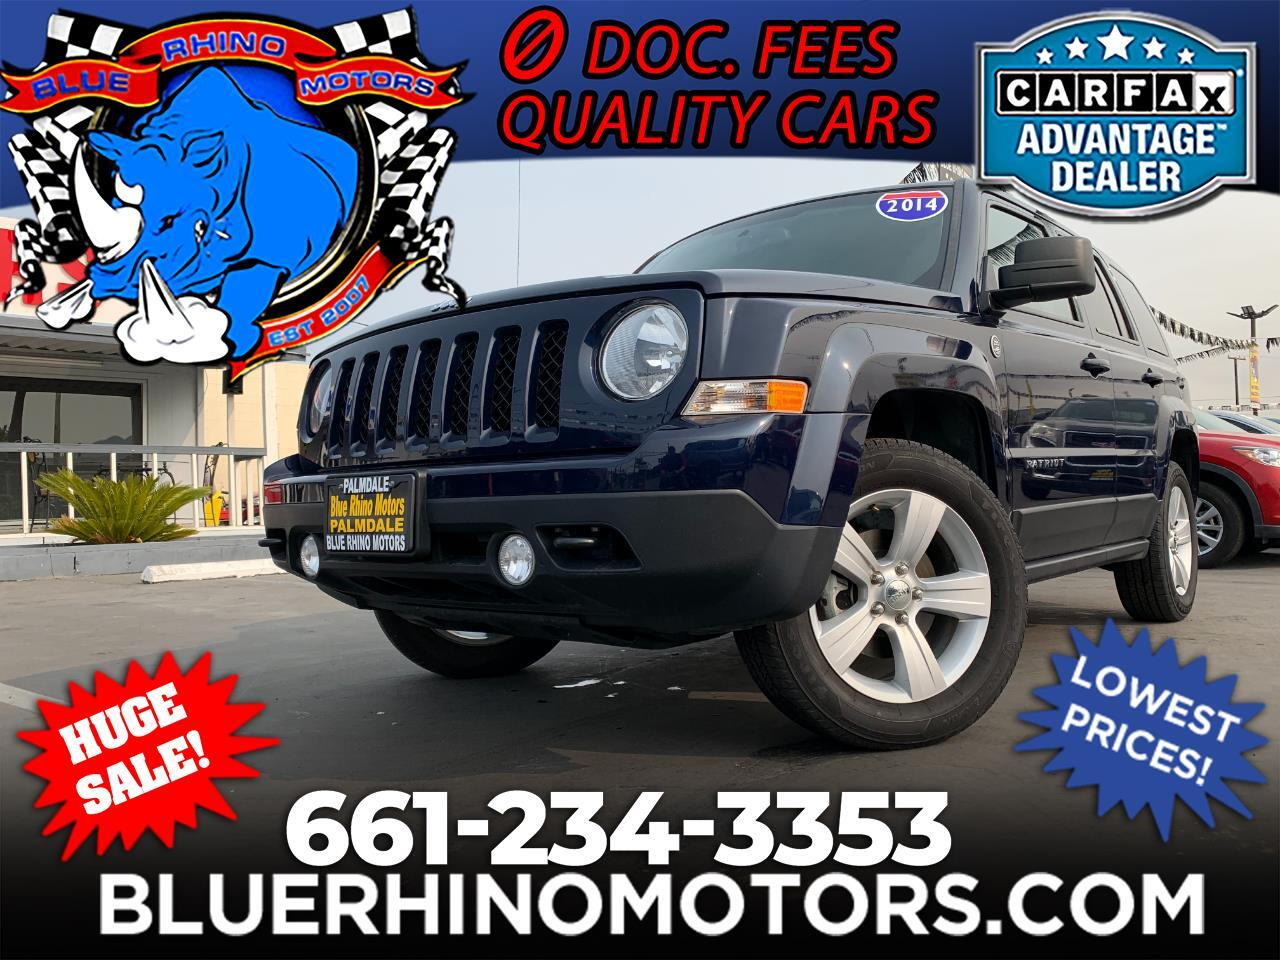 used cars for sale palmdale ca 93550 blue rhino motors palmdale used cars for sale palmdale ca 93550